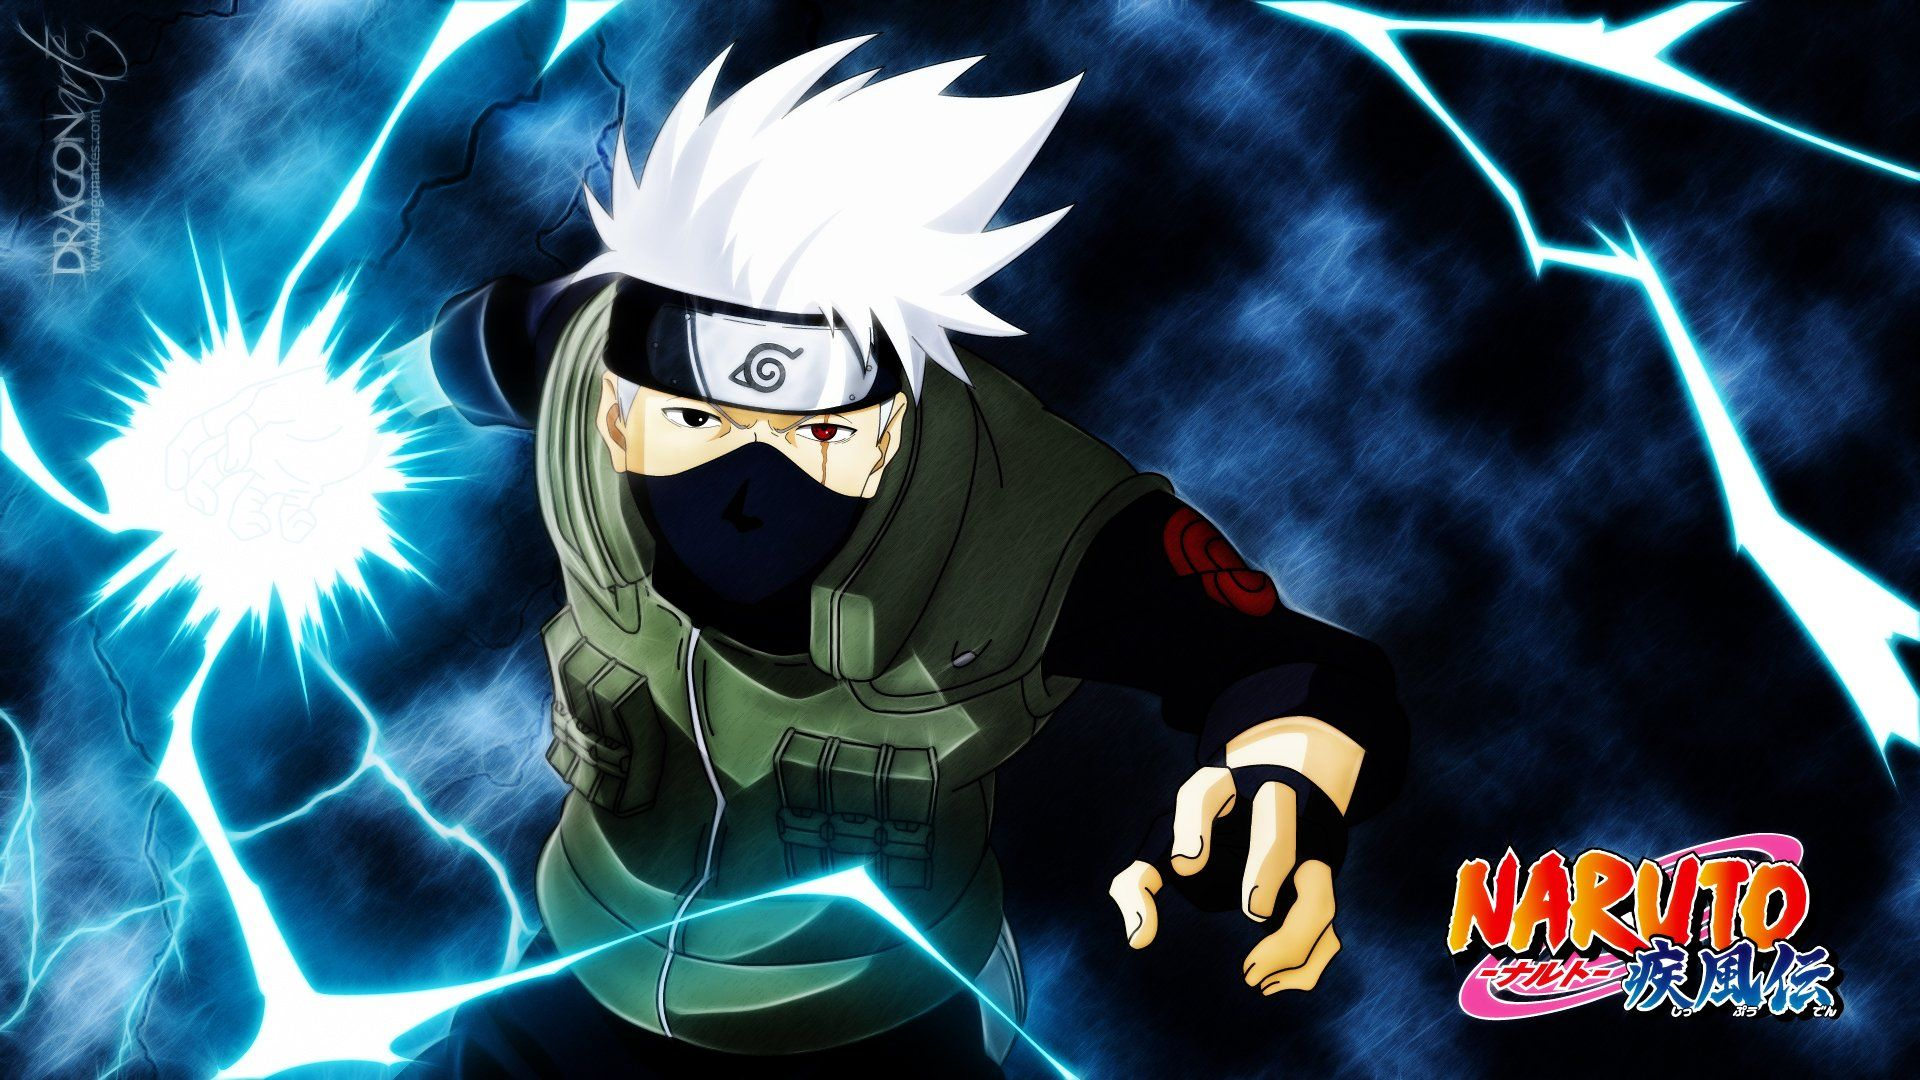 Naruto Kakashi Wallpapers 19 Jpg 1920 1080 Animasi Anime Gadis Cantik Wallpaper Ponsel